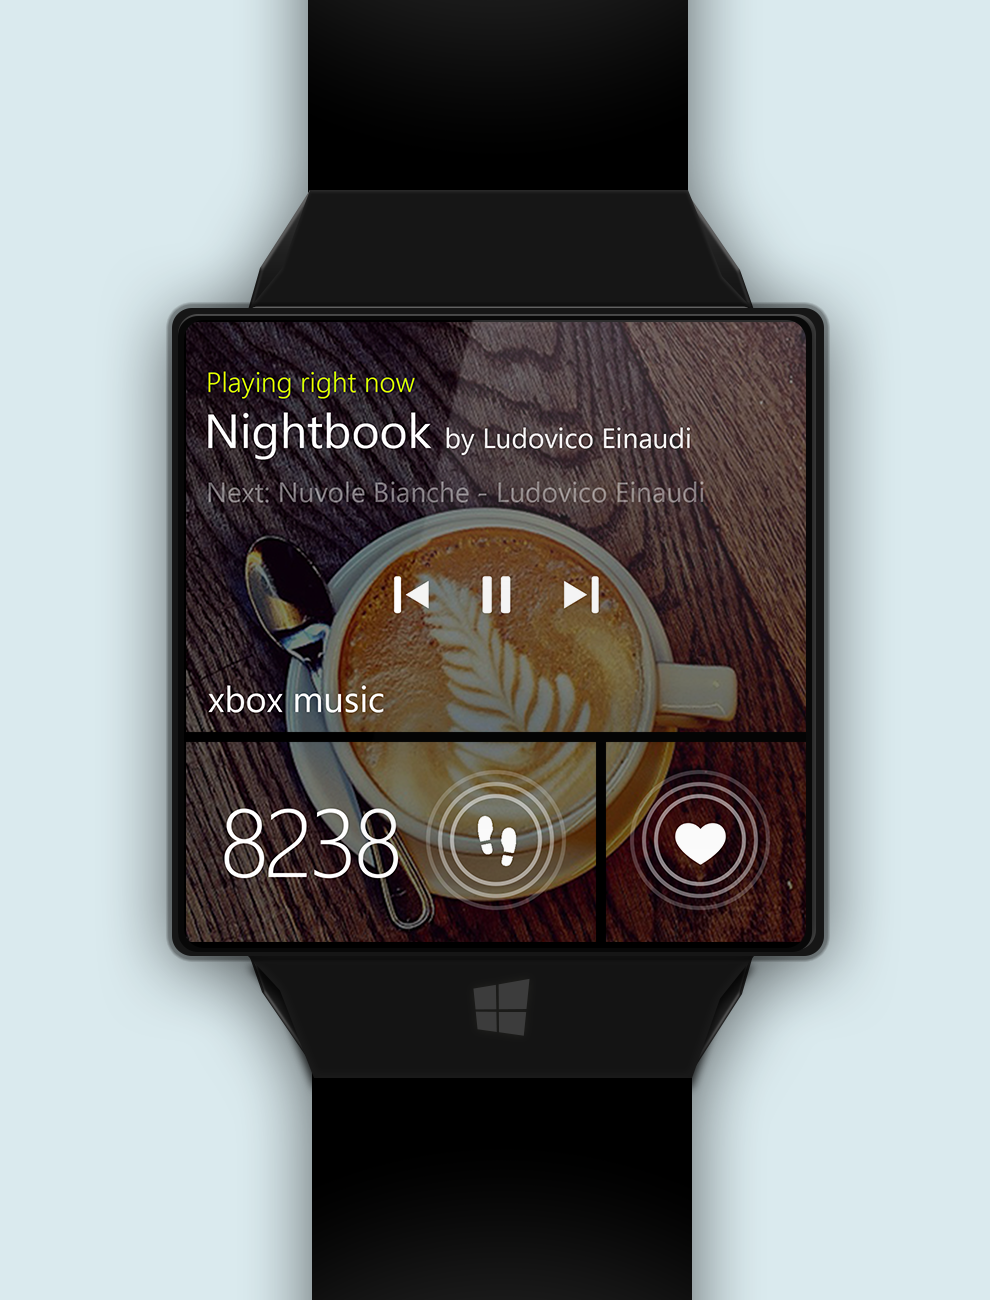 Windows_watch_music_heartbeat_step_tracker